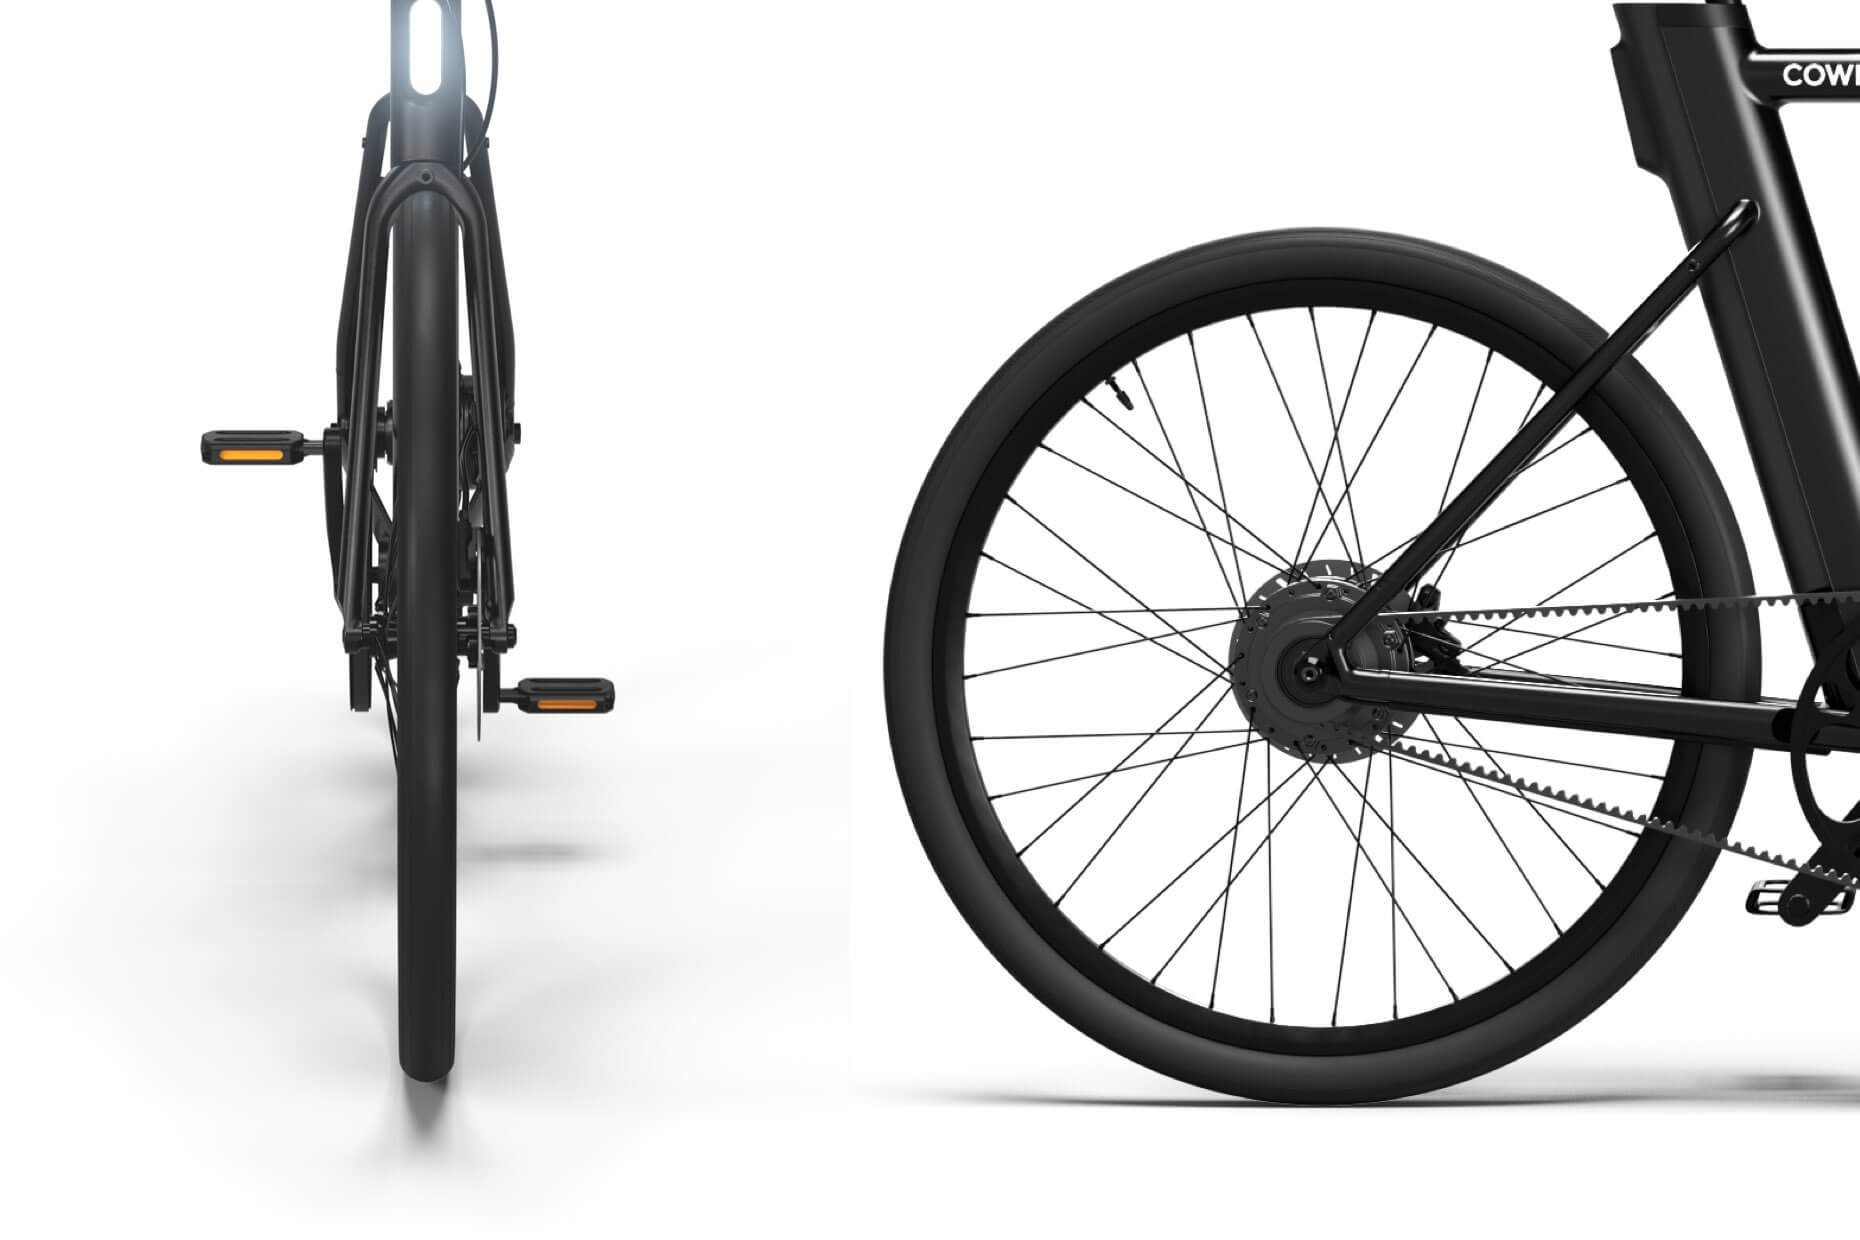 Cowboy e-bike - Comfort - Wide tires